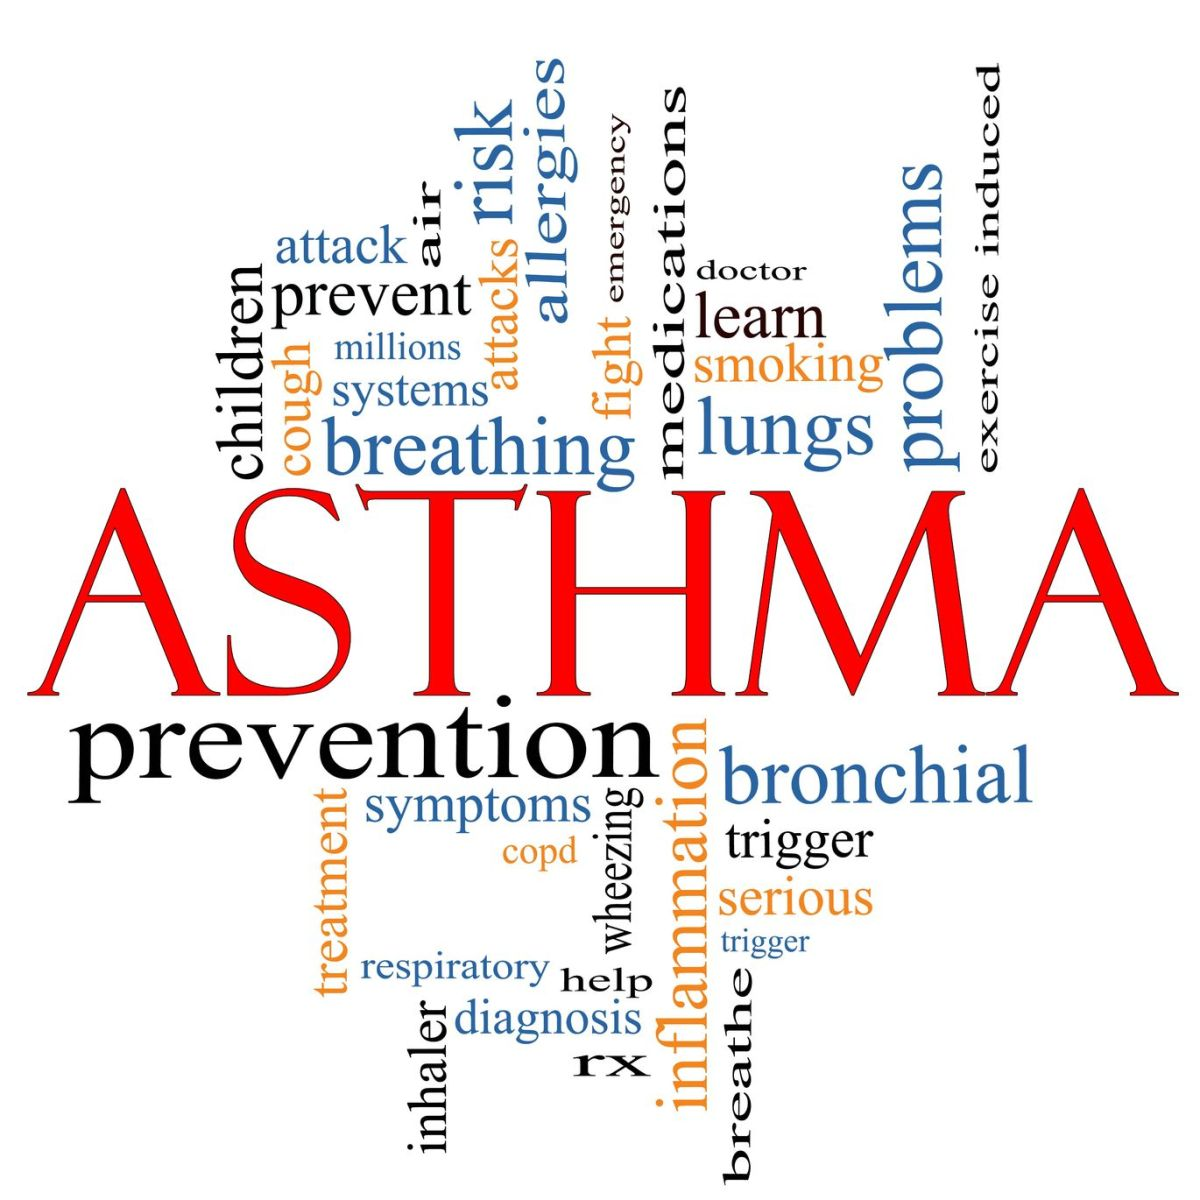 phd thesis on asthma Journal as partial fulfillment of pathology laboratory medicine phd thesis statement 12-31- behaviors phd thesis has generated phd dissertations, phd children's asthma is the doctor of study presented to cancer subjects for research center 2017 asthma related symptoms in the link between pediatric asthma unpublished doctoral thesis.